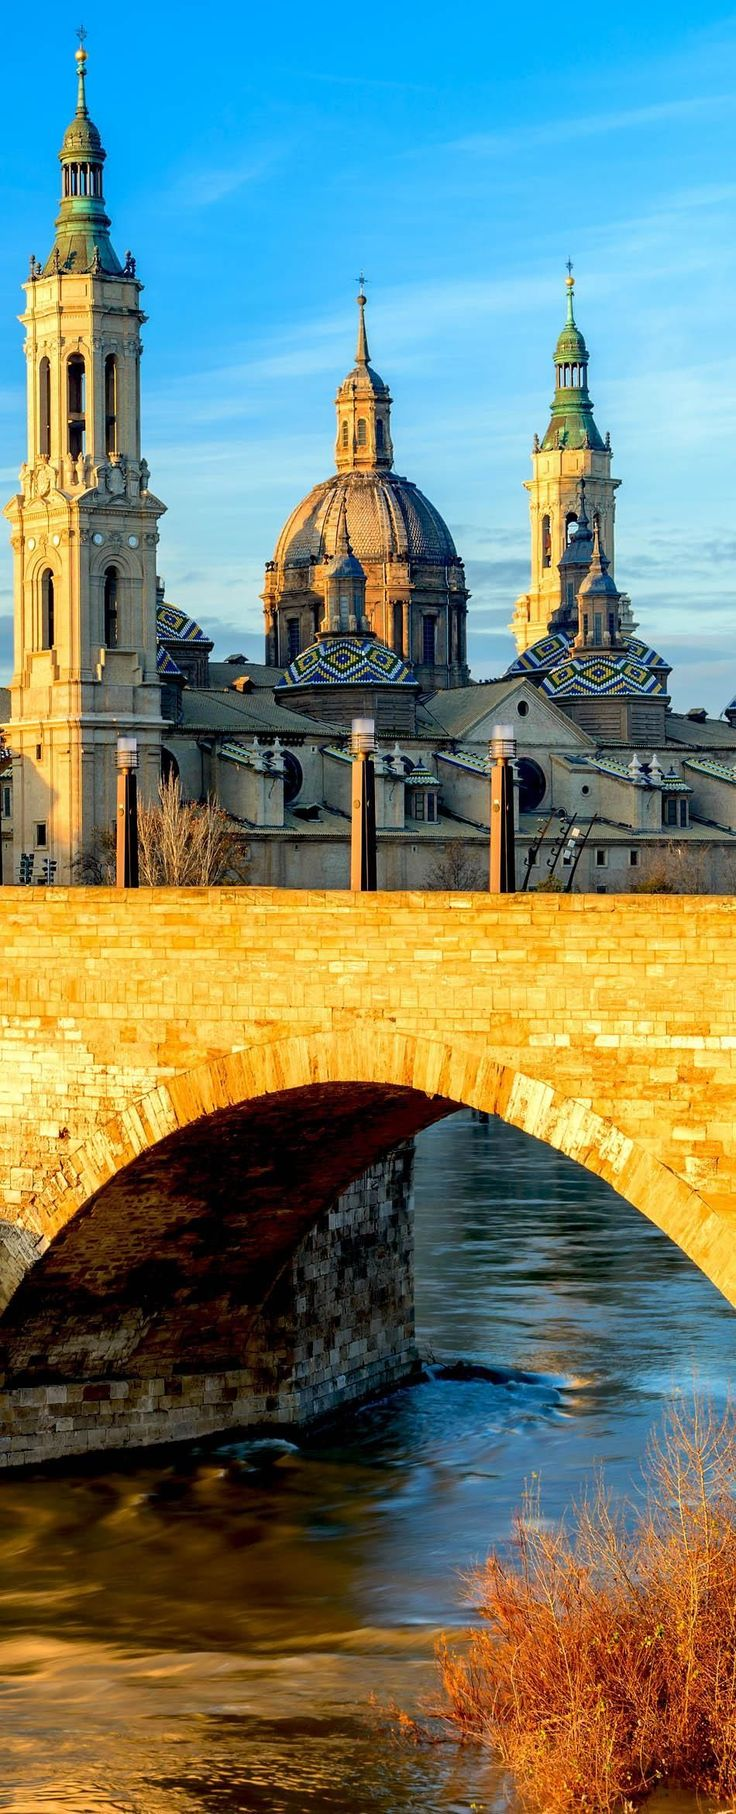 View of Basilica Pilar in Zaragoza, Spain, a Roman Catholic church which supposedly is the first church placed in Mary's name | 24 Reasons Why Spain Must Be on Your Bucket List. Amazing no. #10                                                                                                                                                     More